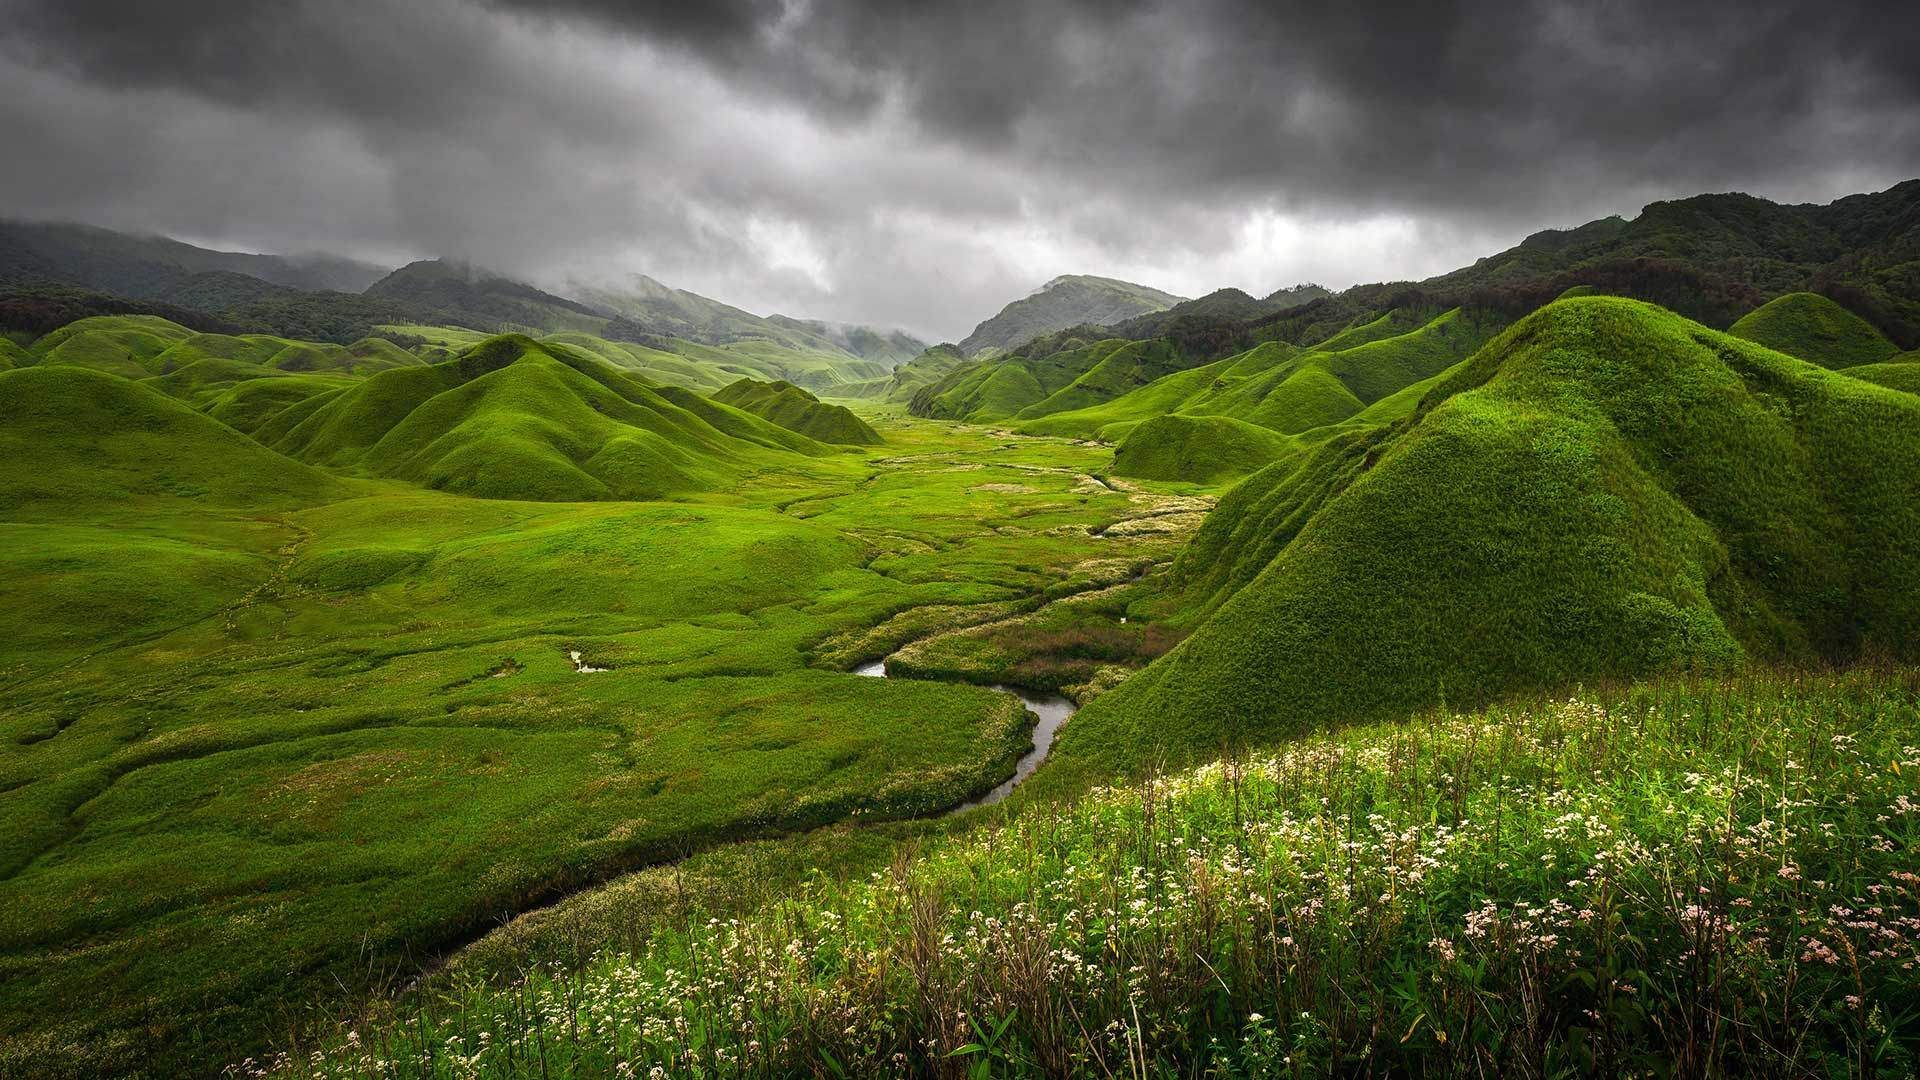 The Rolling Hills Are Draped With The Most Lush Green Grass Grass Wallpaper Scenery Wallpaper Grasses Landscaping